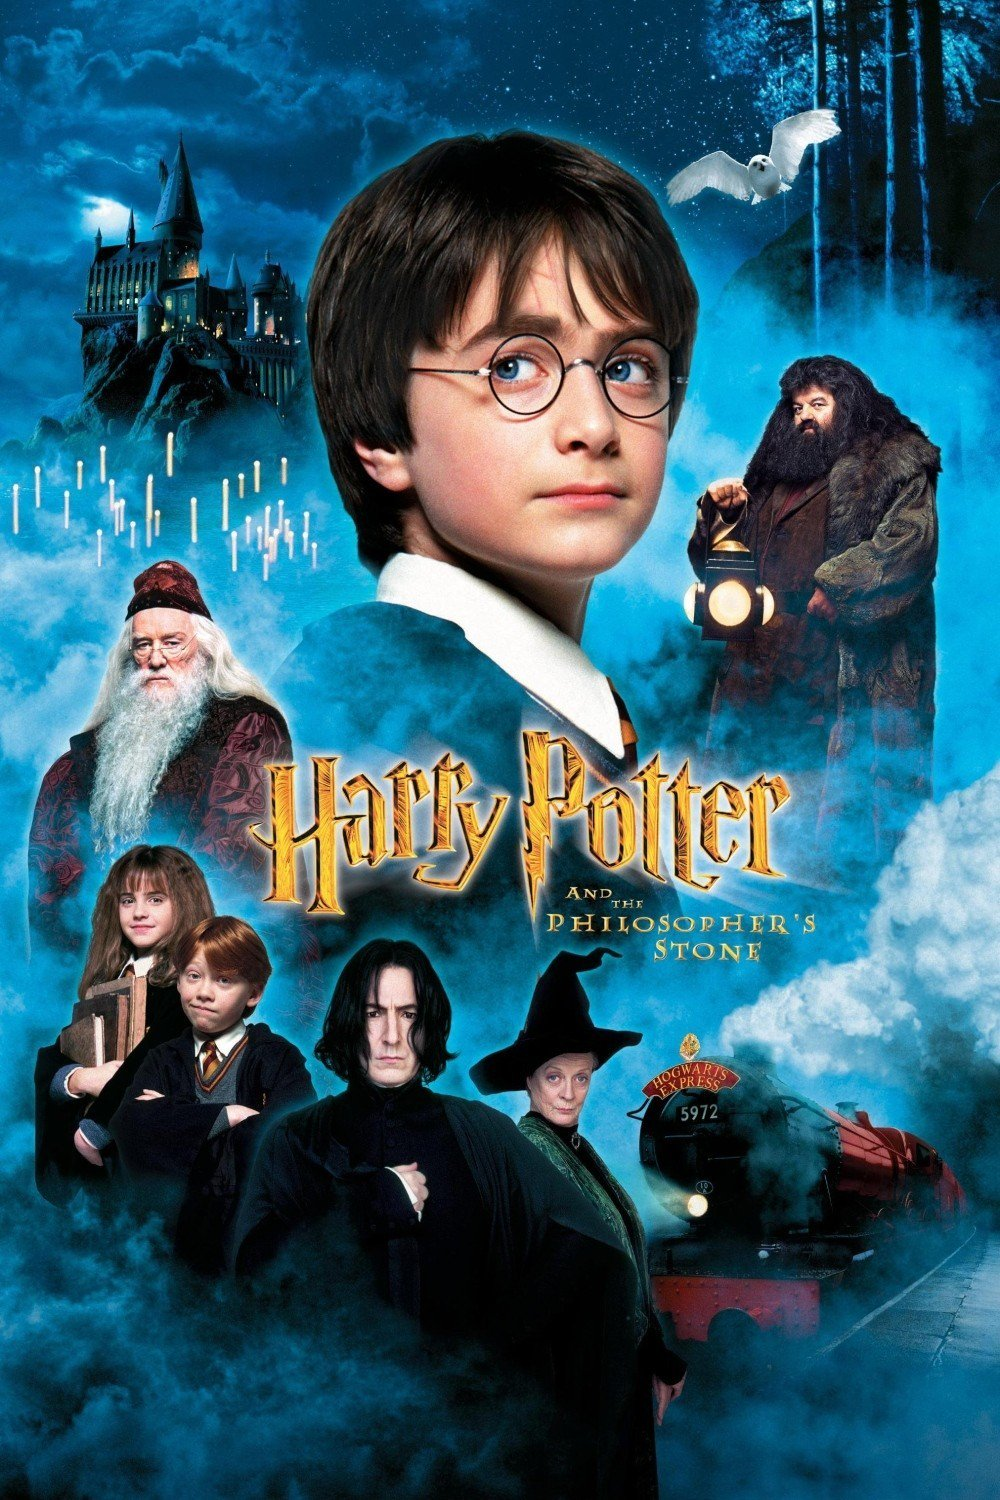 harry potter poster the philosophers stone high quality HD printable wallpapers official poster all characters